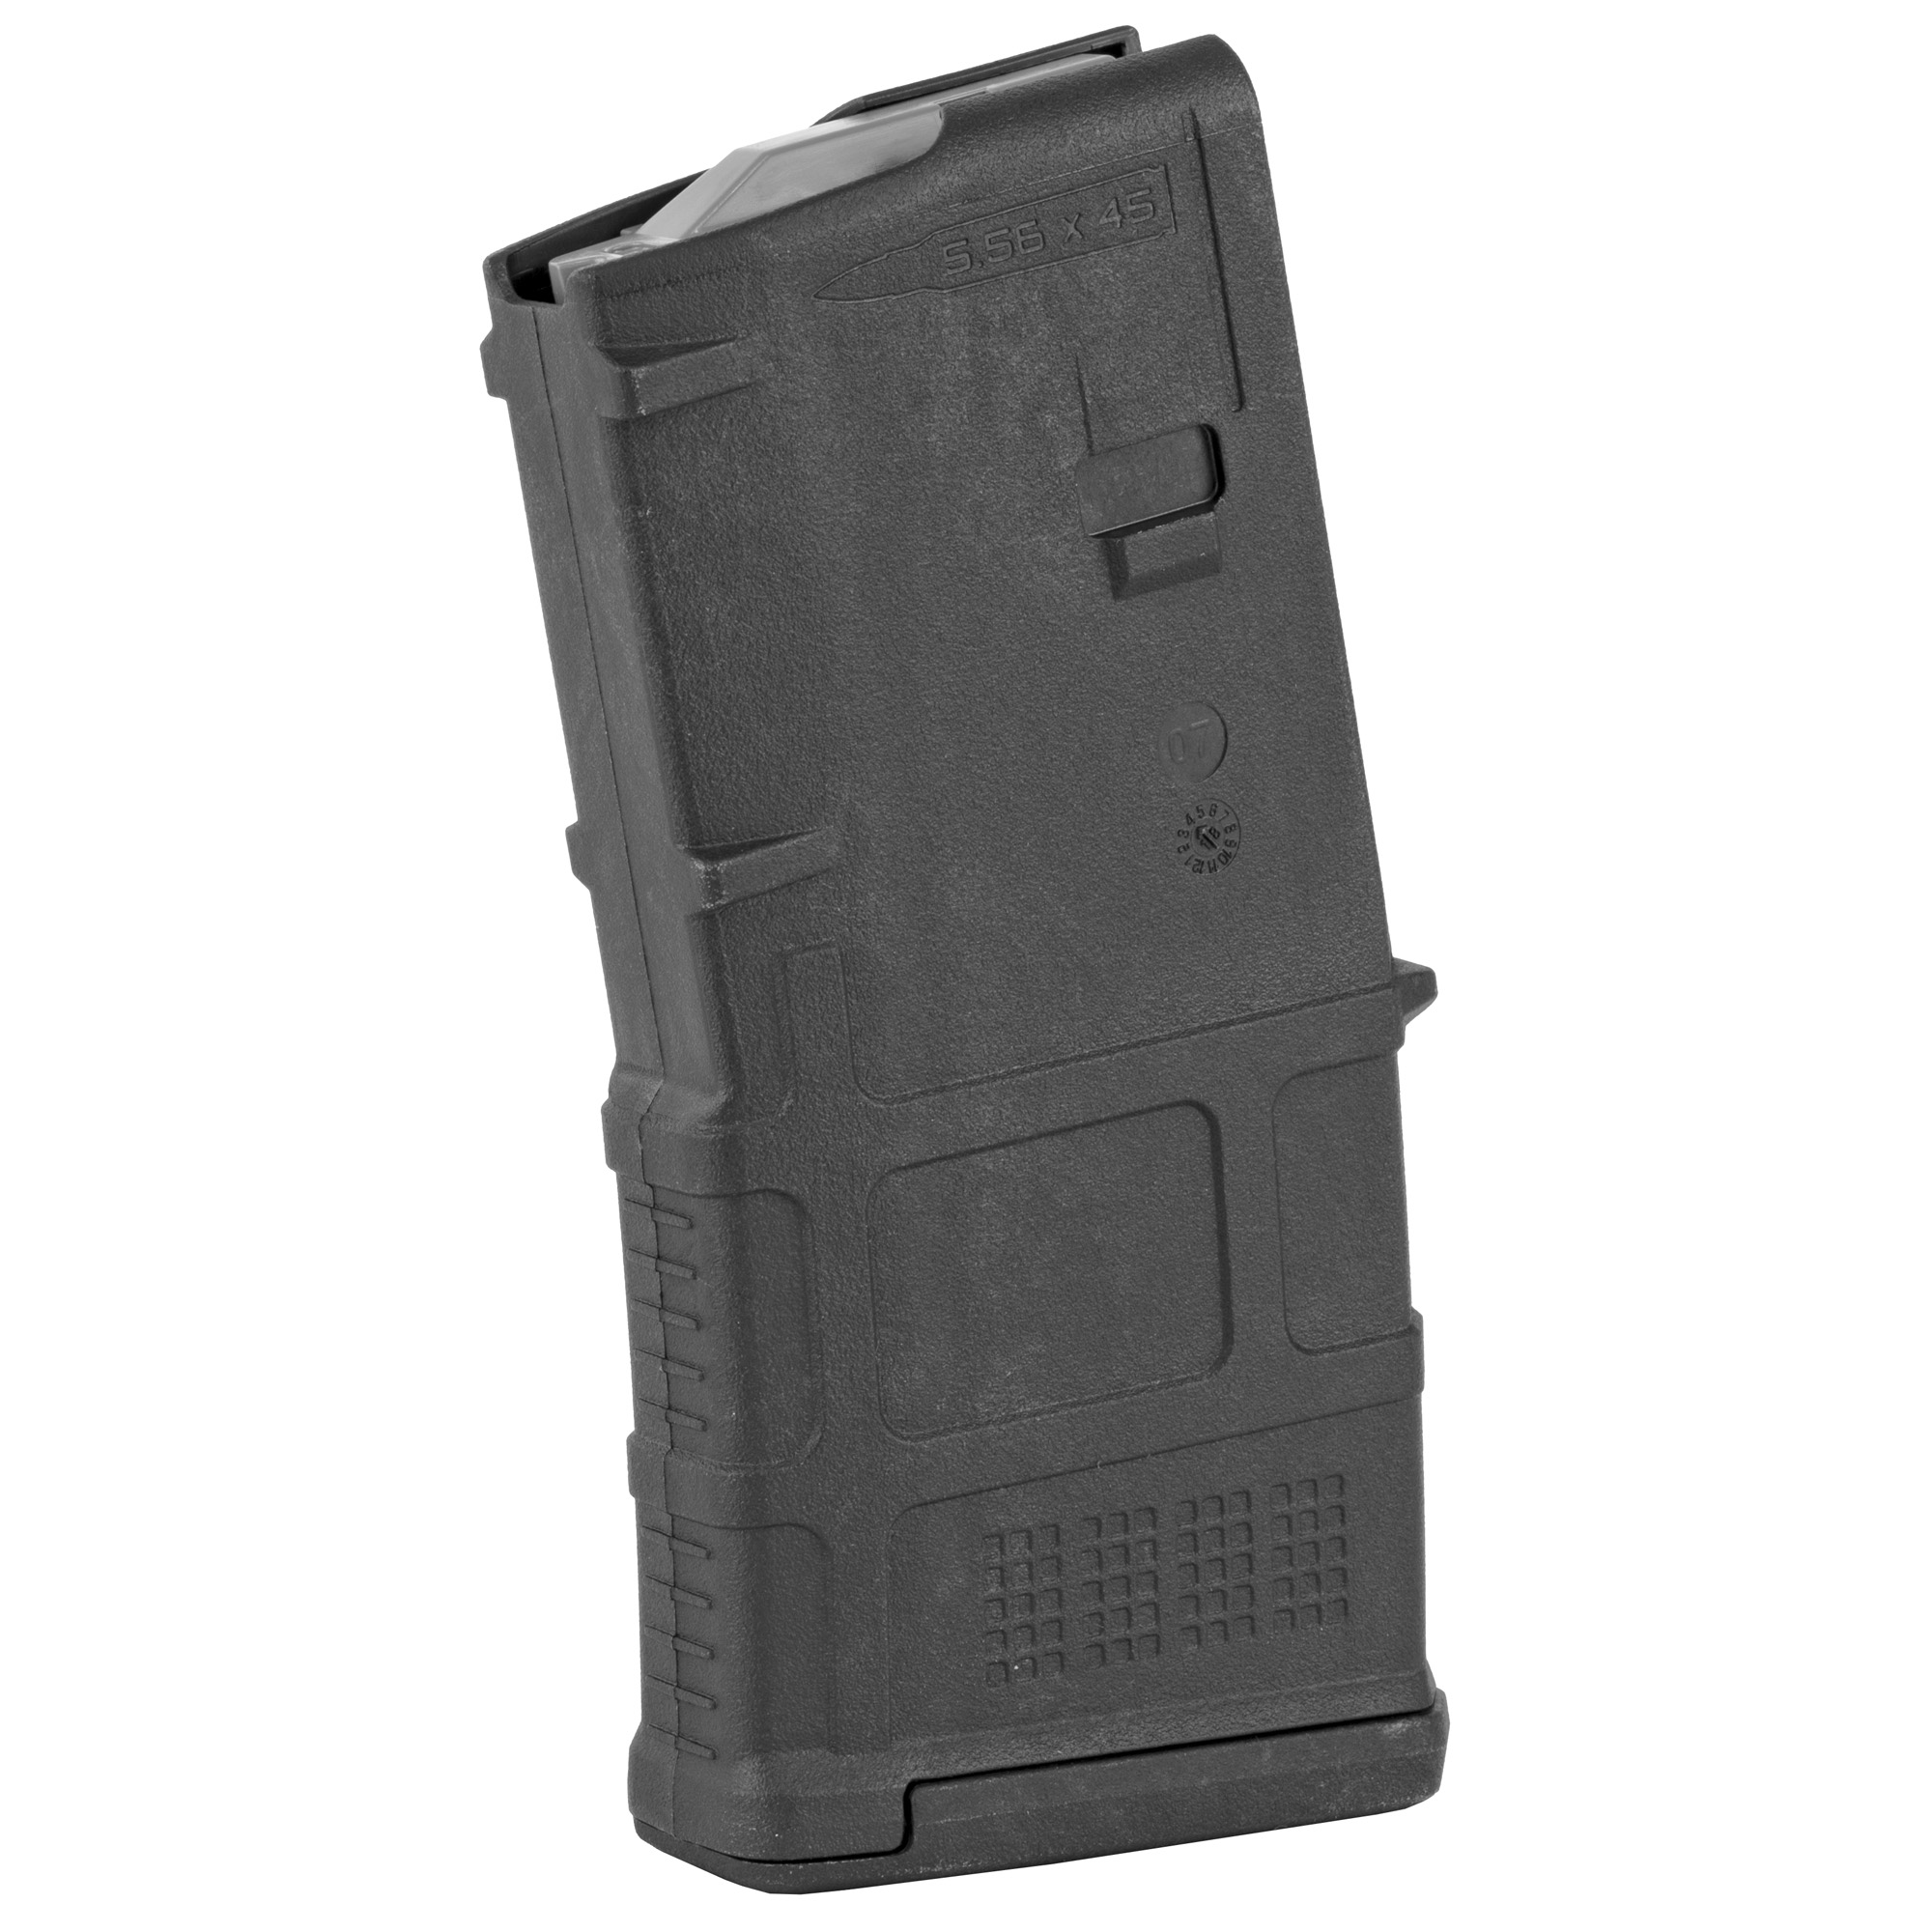 """The next-generation PMAG 20 GEN M3 is a 20-round 5.56x45 NATO (.223 Remington) polymer magazine for AR15/M4 compatible weapons. Along with expanded feature set and compatibility"""" the GEN M3 incorporates new material technology and manufacturing processes for enhanced strength"""" durability"""" and reliability to exceed rigorous military performance specifications. While the GEN M3 is optimized for Colt-spec AR15/M4 platforms"""" modified internal and external geometry also permits operation with a range of additional weapons such as the HK(R) 416/MR556A1/M27 IAR"""" British SA-80"""" FN(R) SCAR(TM) MK 16/16S"""" and others."""